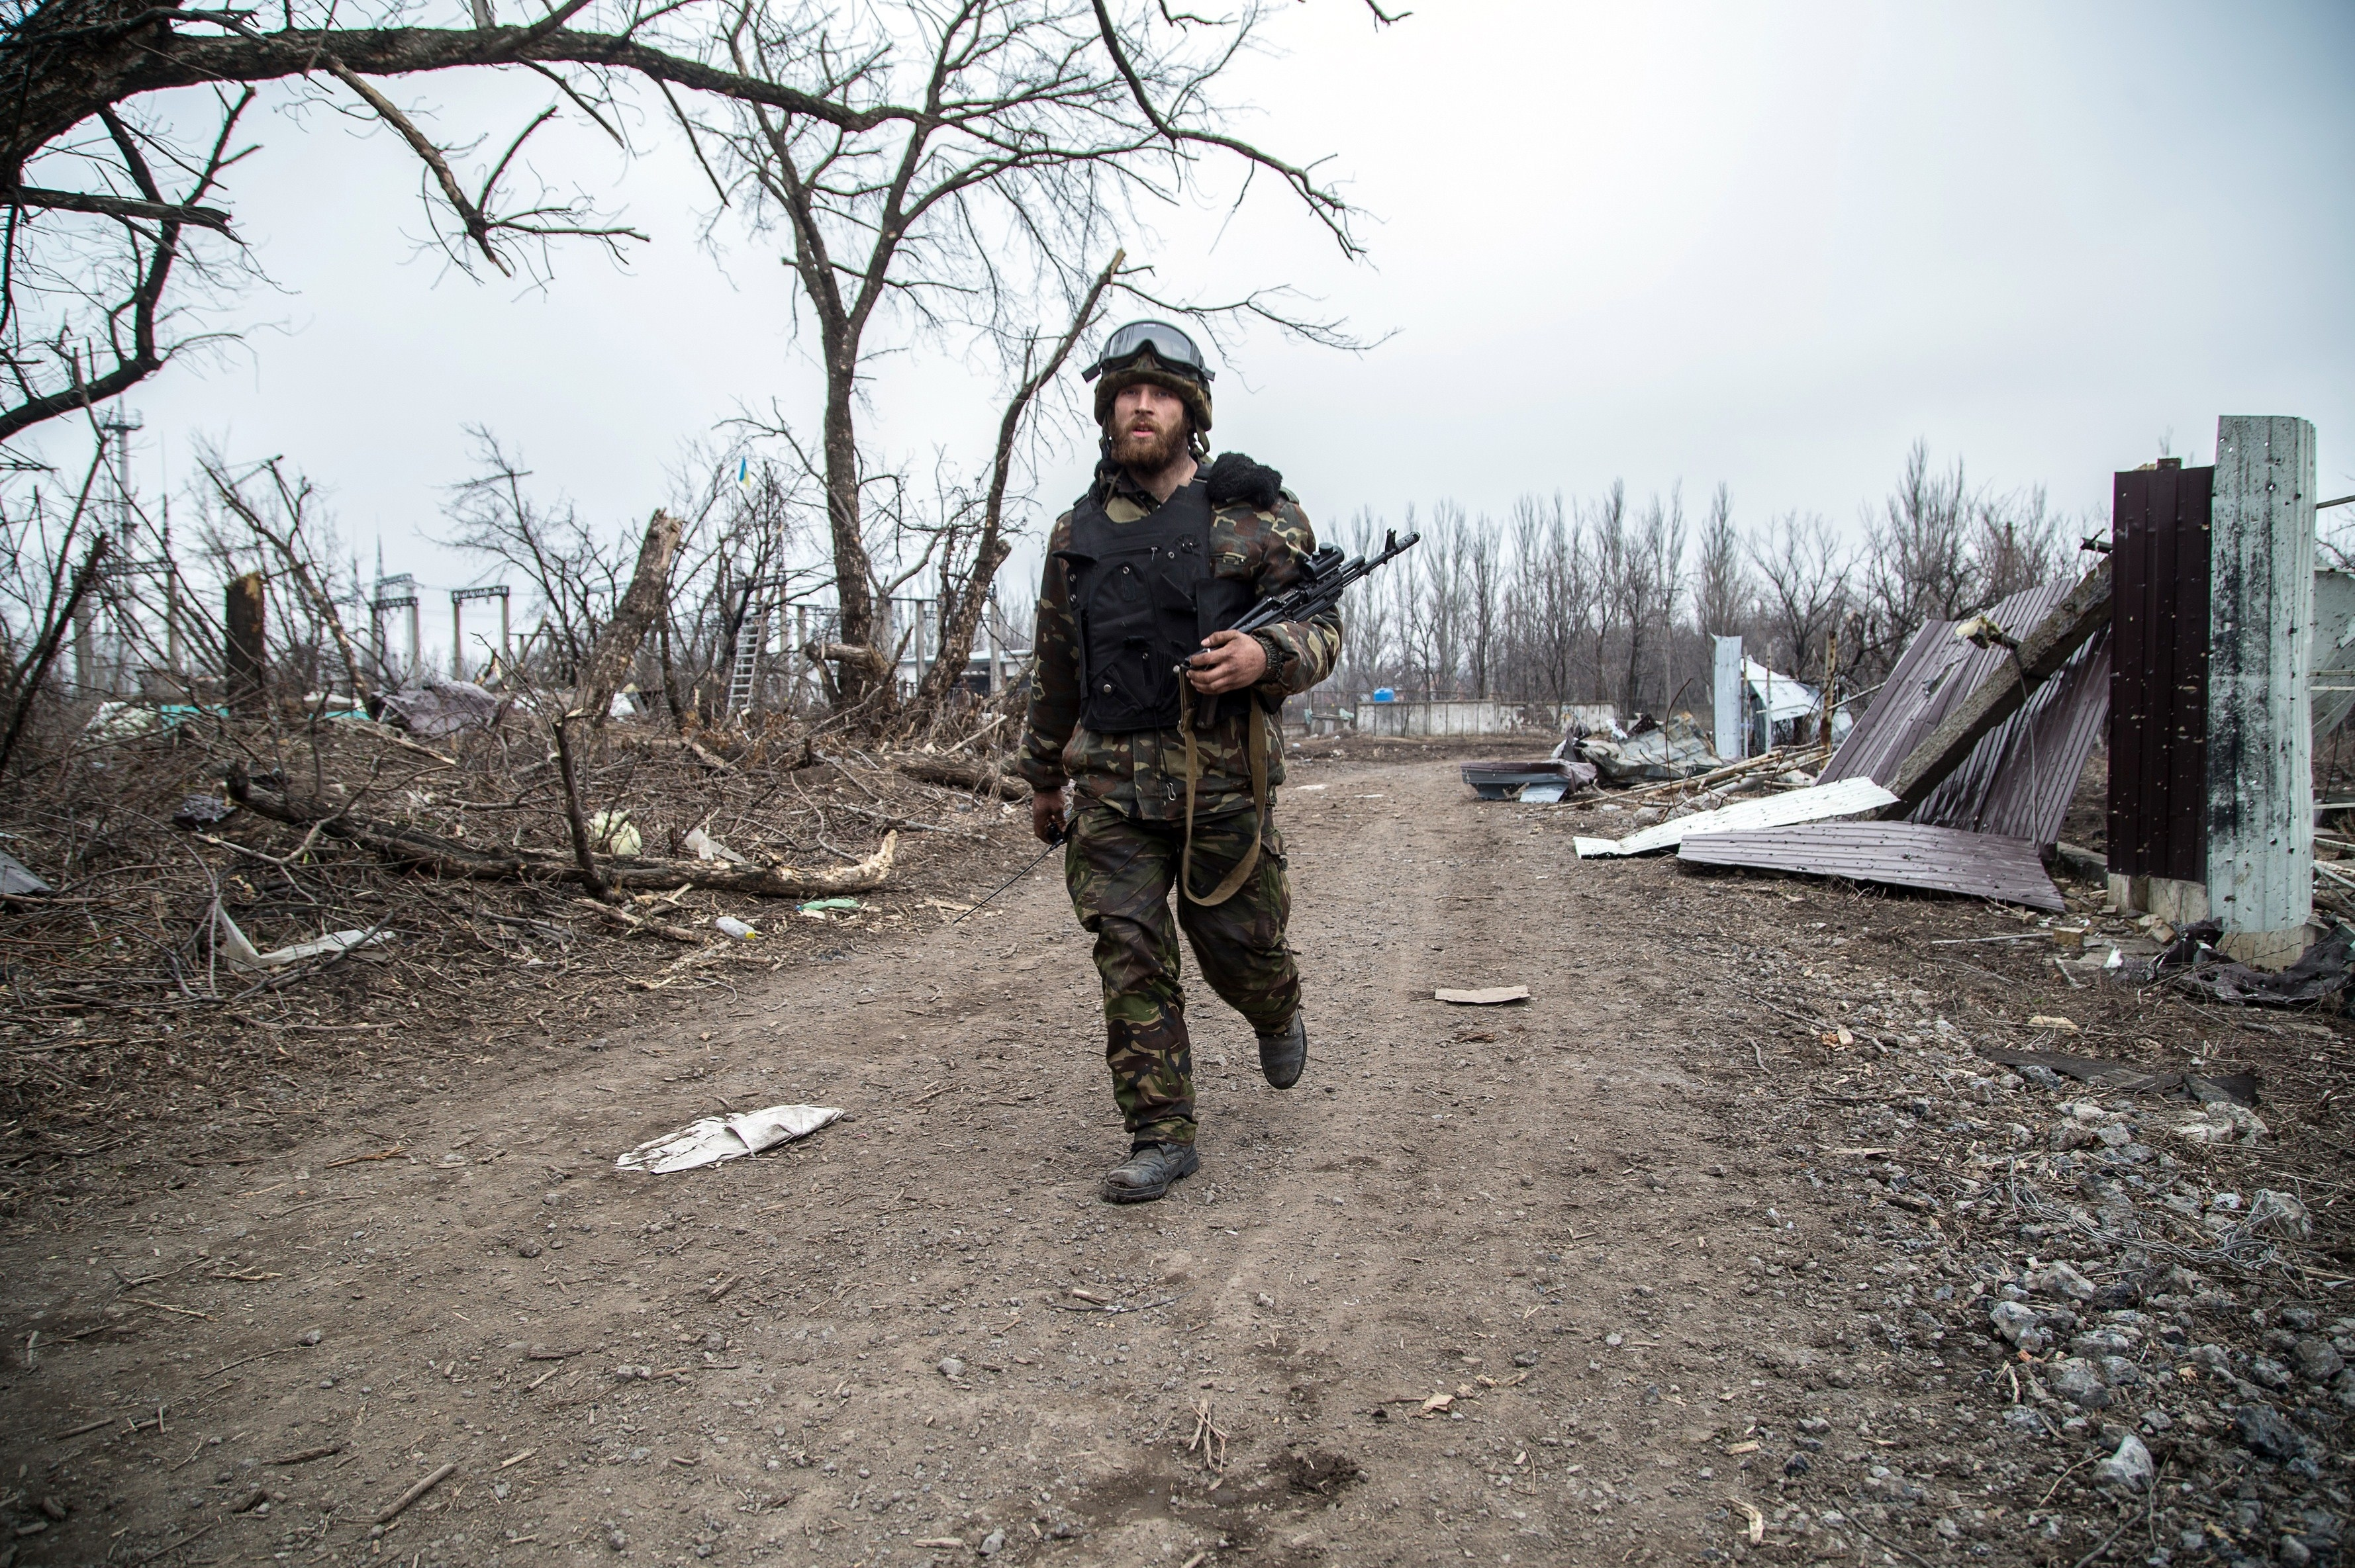 A Ukrainian serviceman walks in the village of Pisky in the region of Donetsk controlled by Ukrainian forces on Feb. 26. Oleksandr Ratushniak/AFP/Getty Images